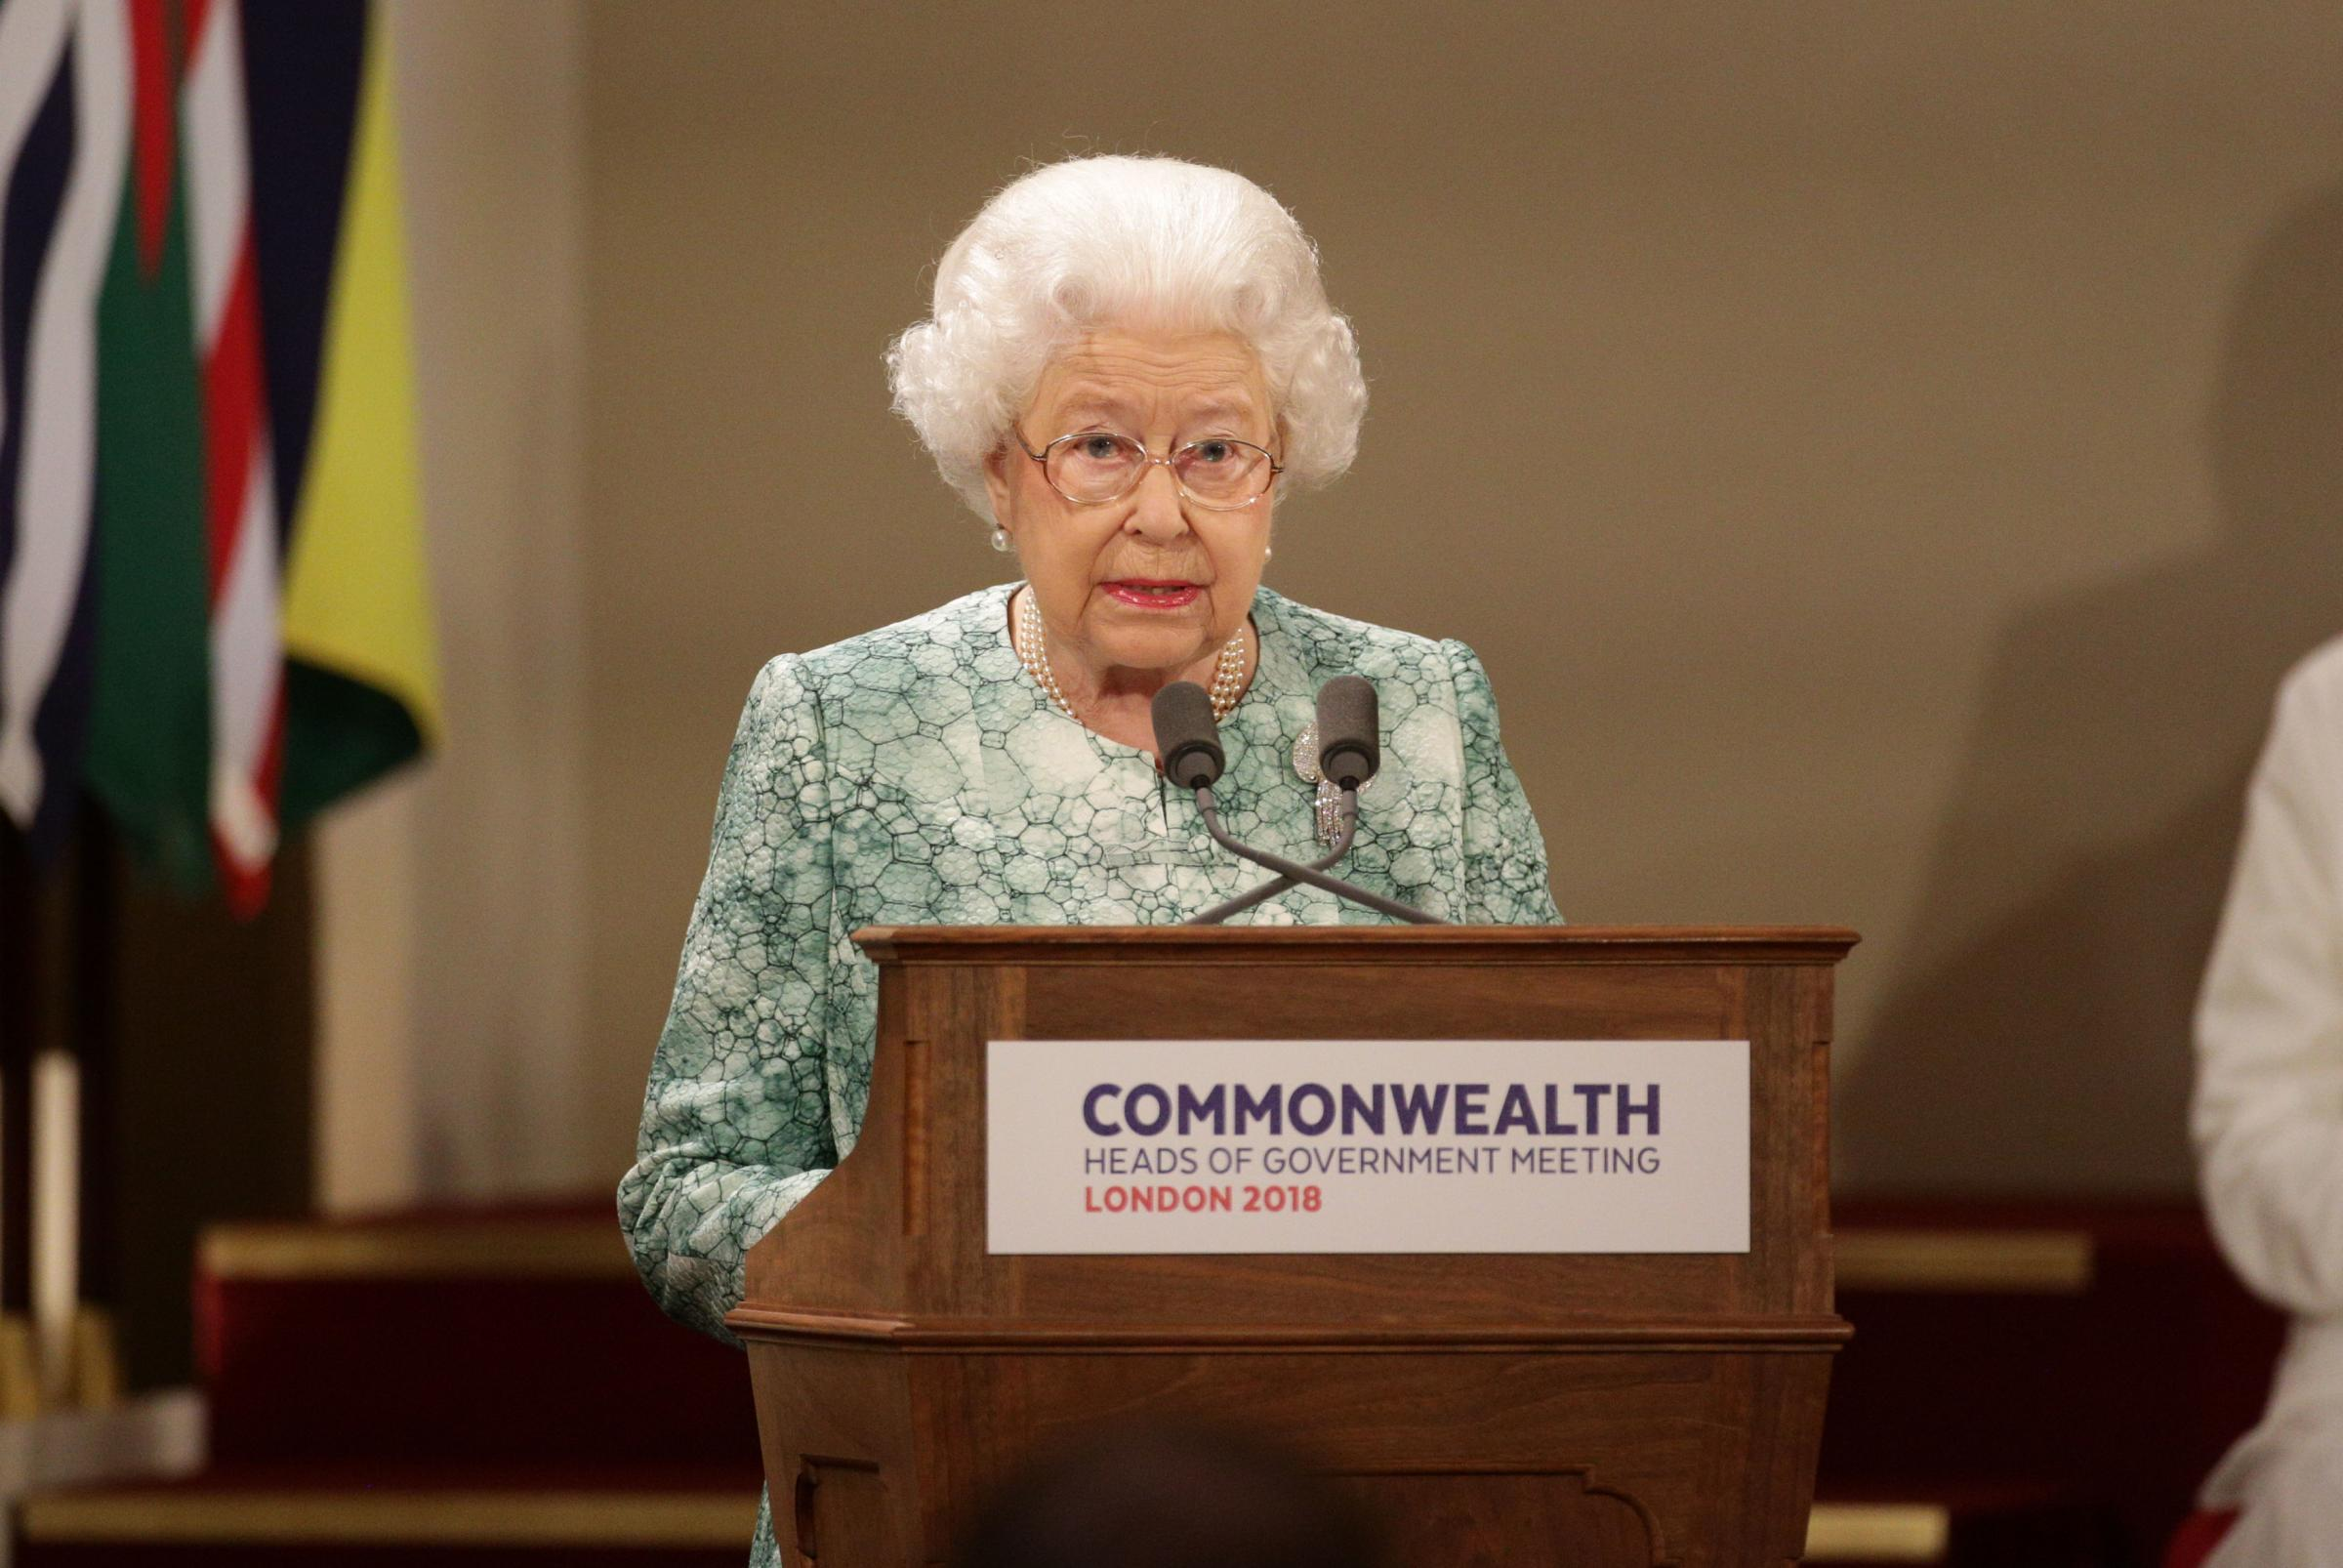 Queen Elizabeth II speaks at the formal opening of the Commonwealth Heads of Government Meeting in the ballroom at Buckingham Palace in London (Yui Mok/PA Wire)